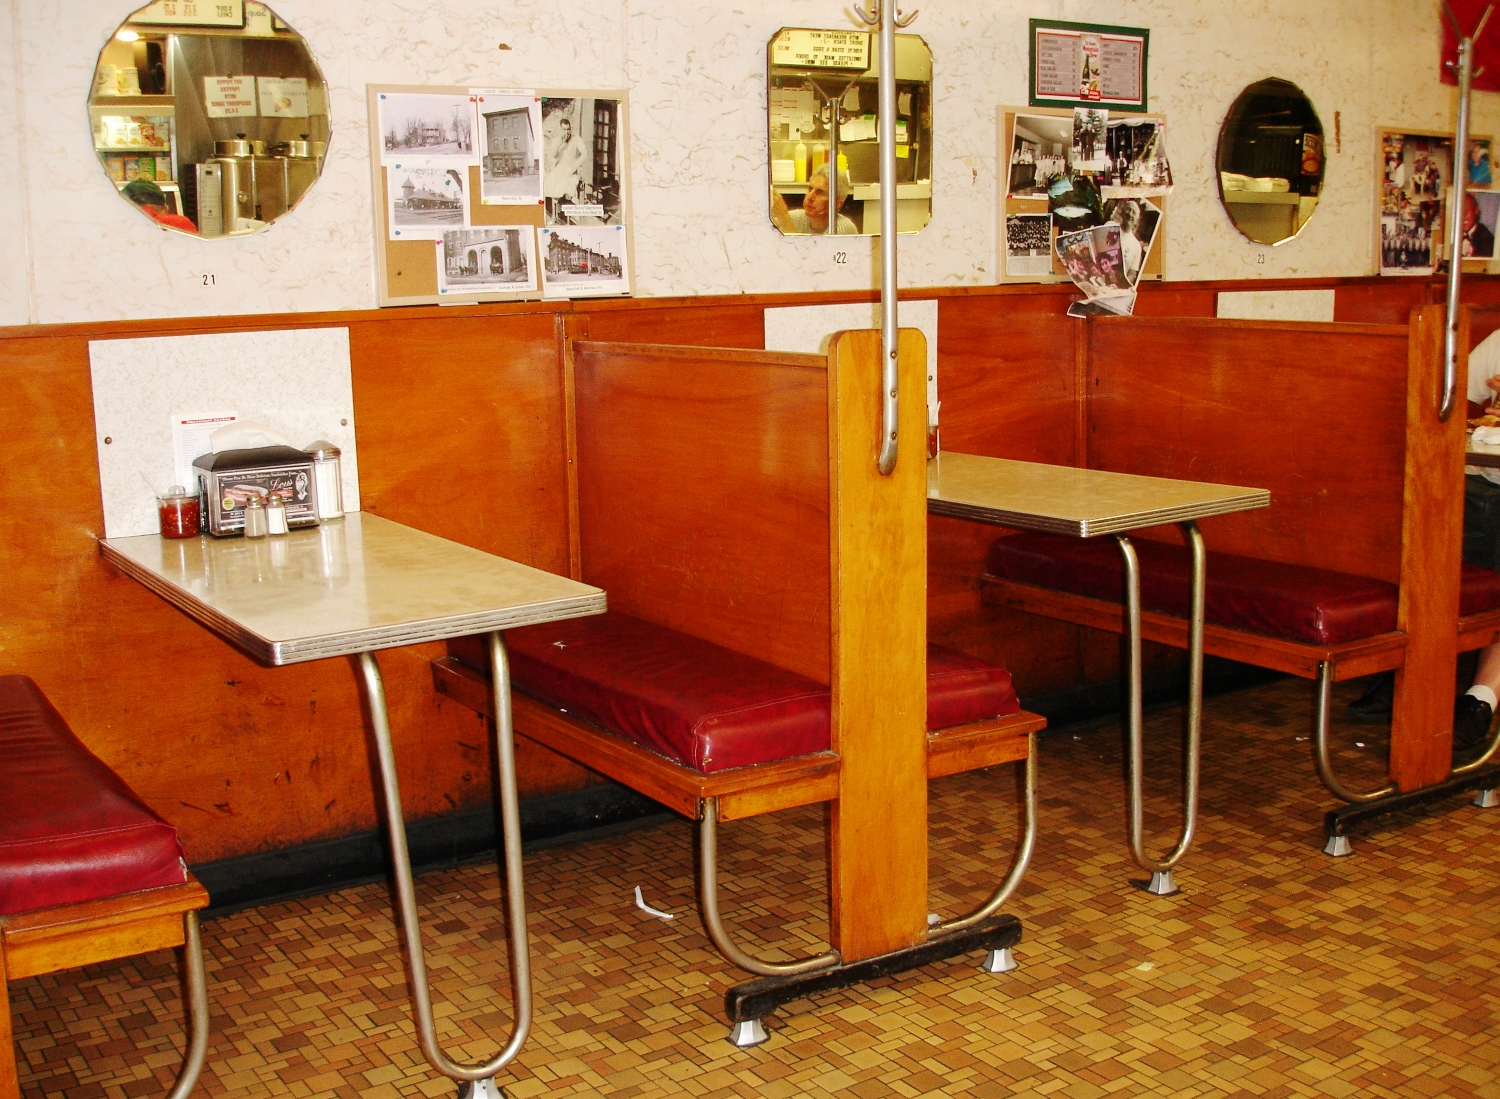 Great old booths